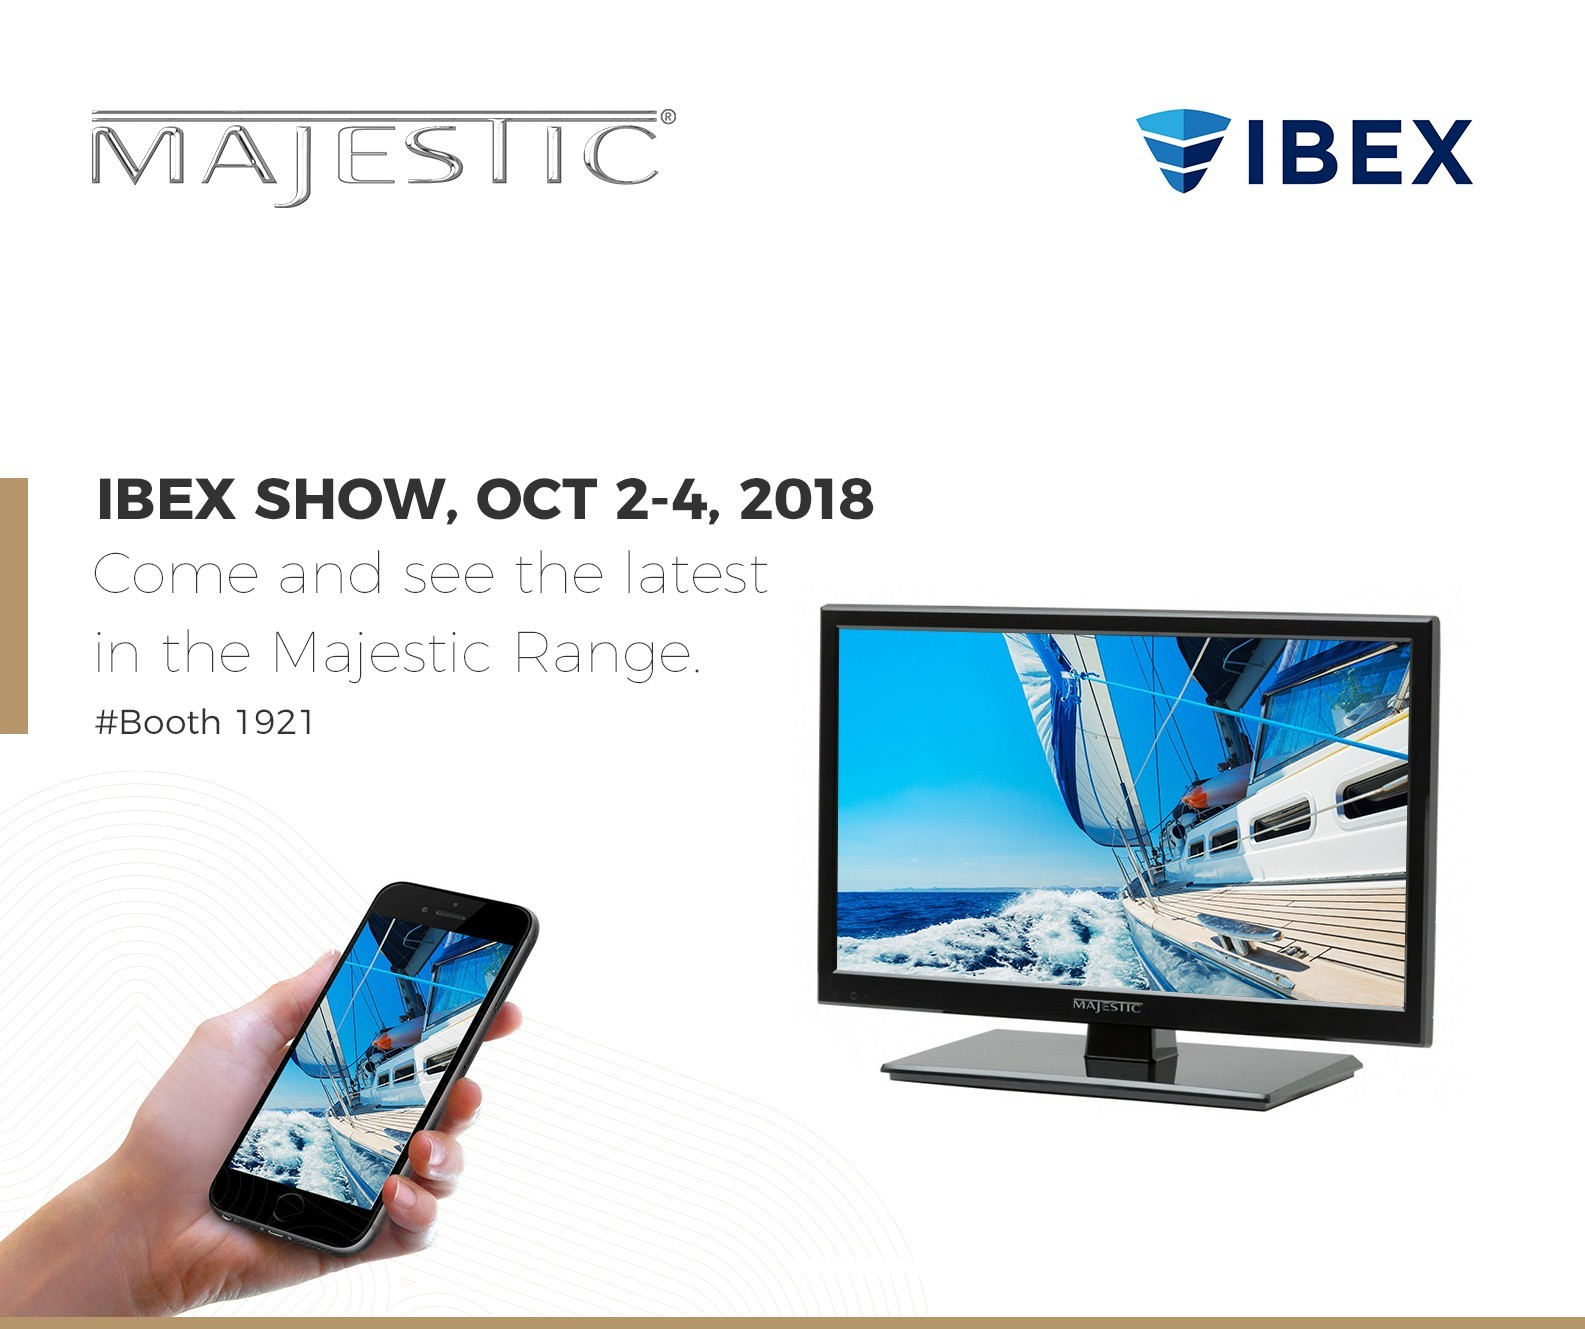 Majestic Global USA IBEX 2018 – Booth 1921